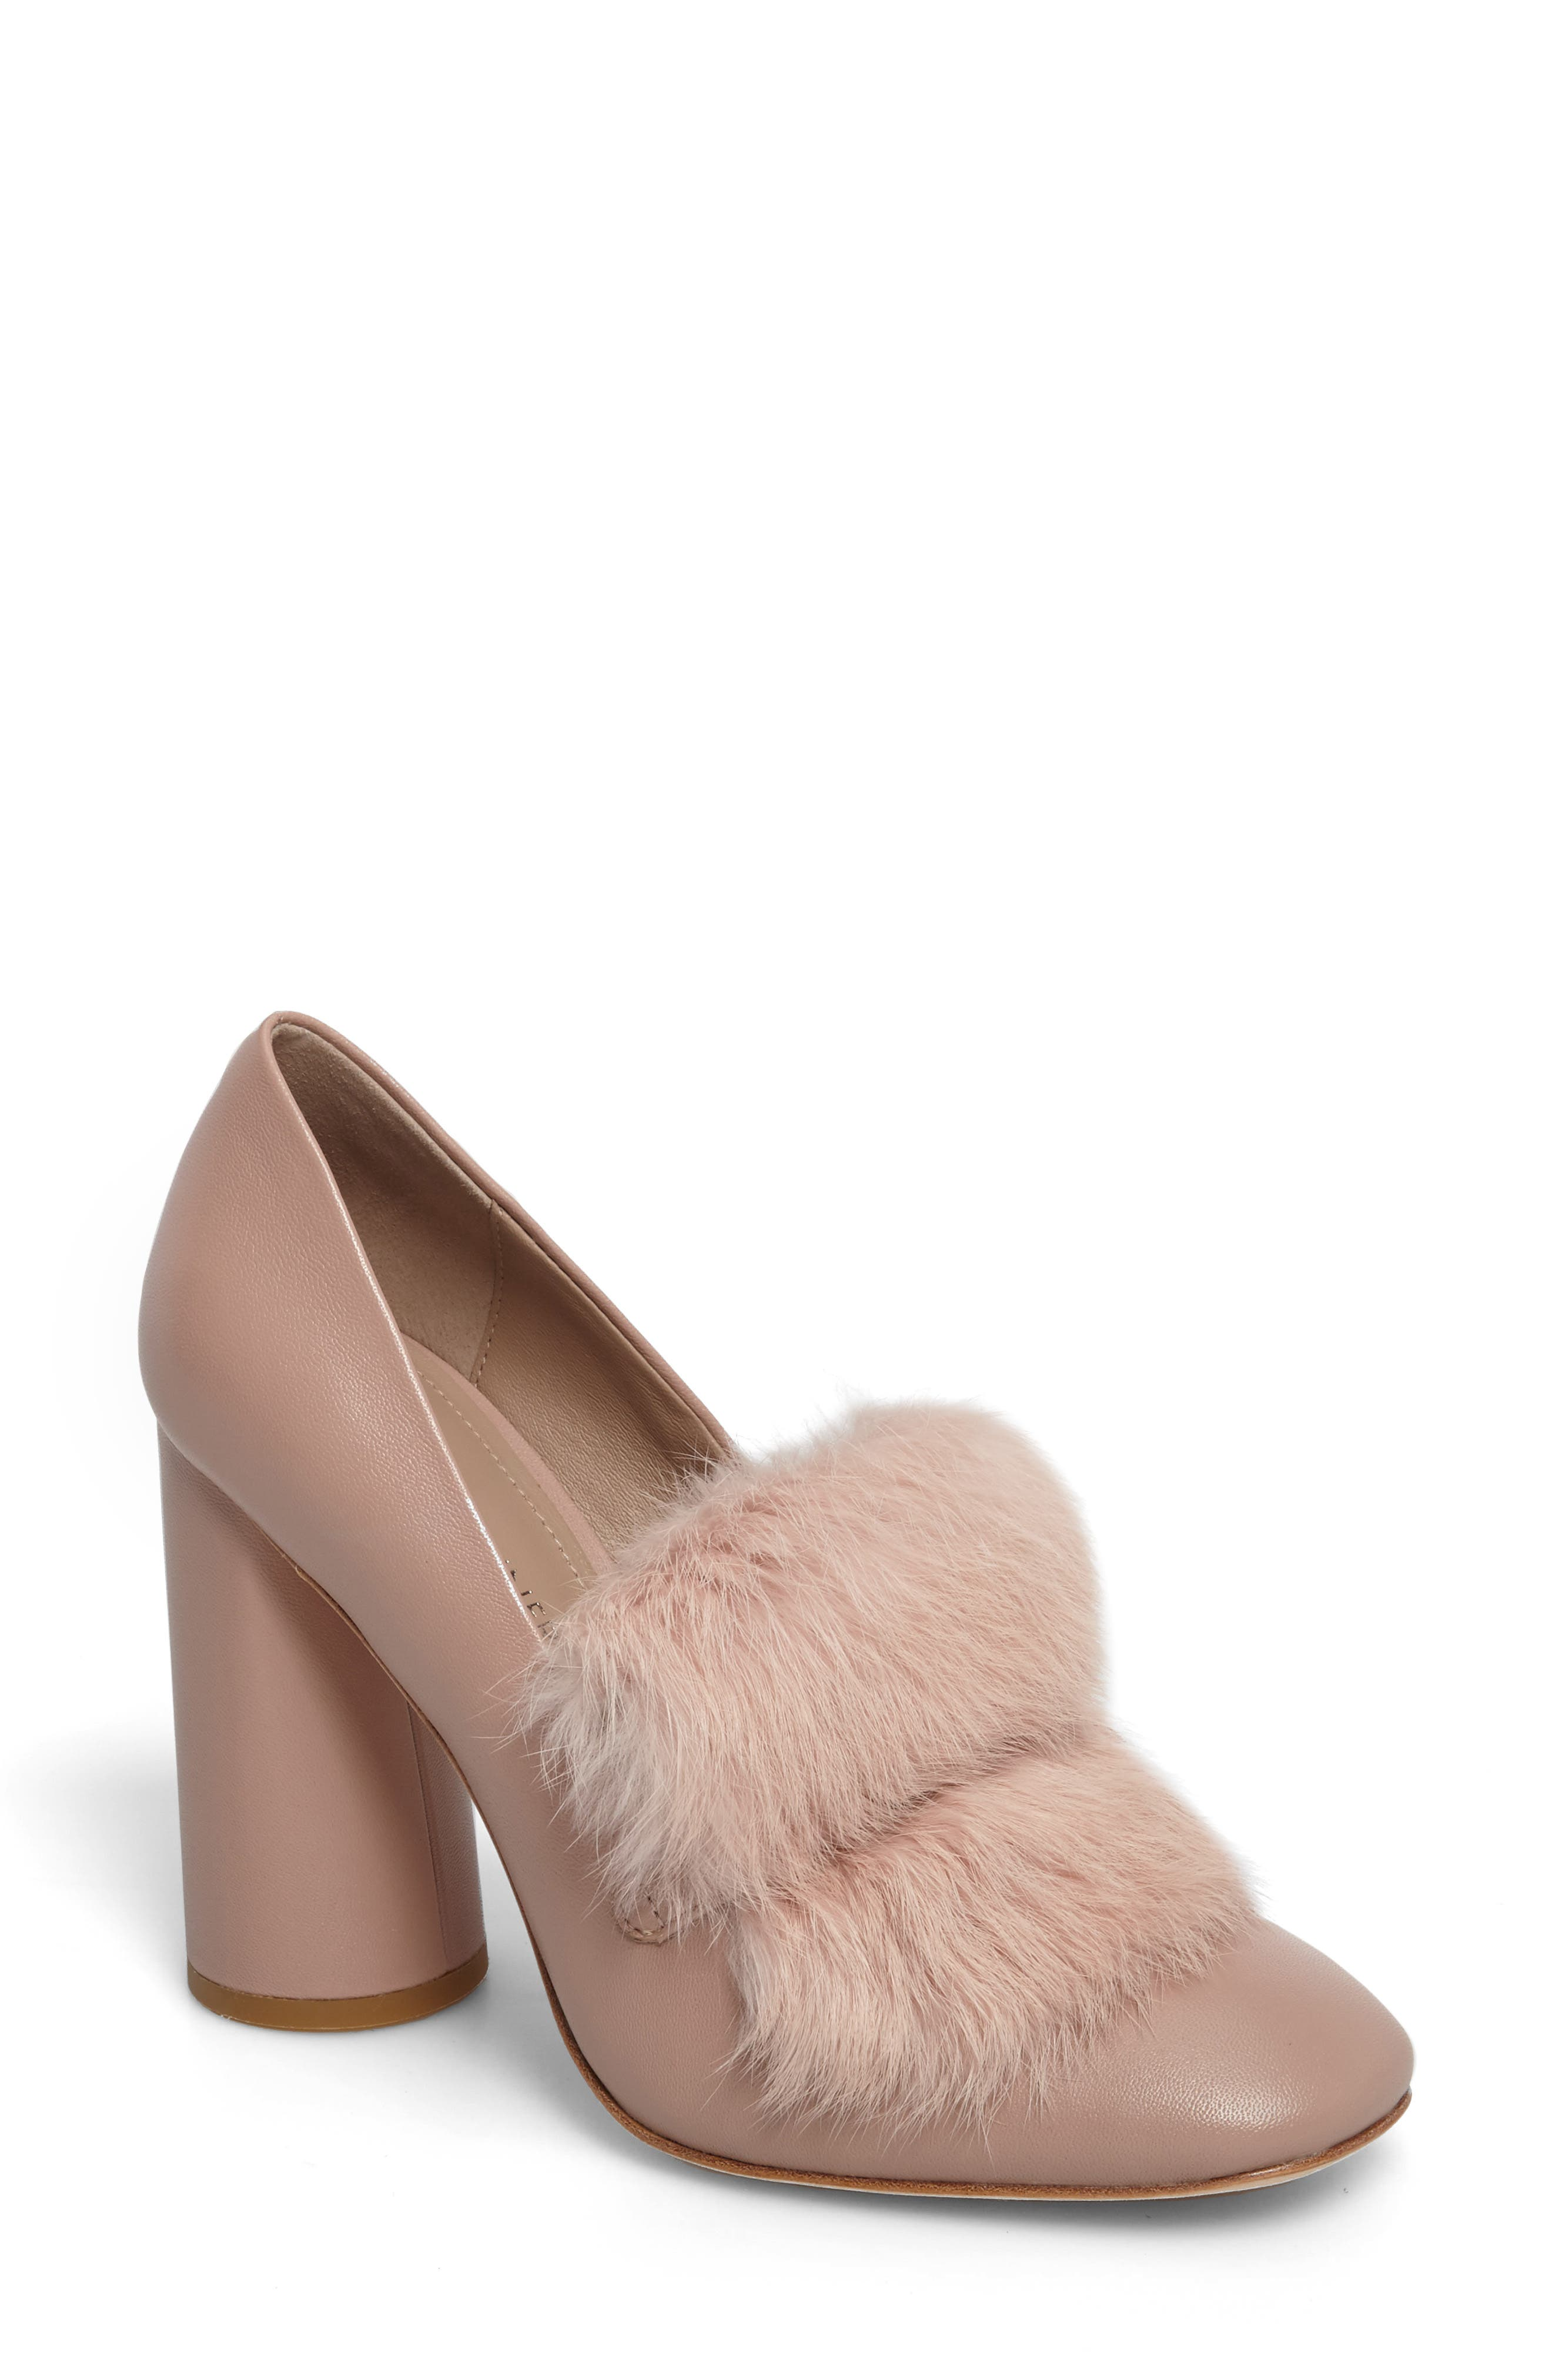 Donald J Pliner Faune Genuine Rabbit Fur Pump (Women)